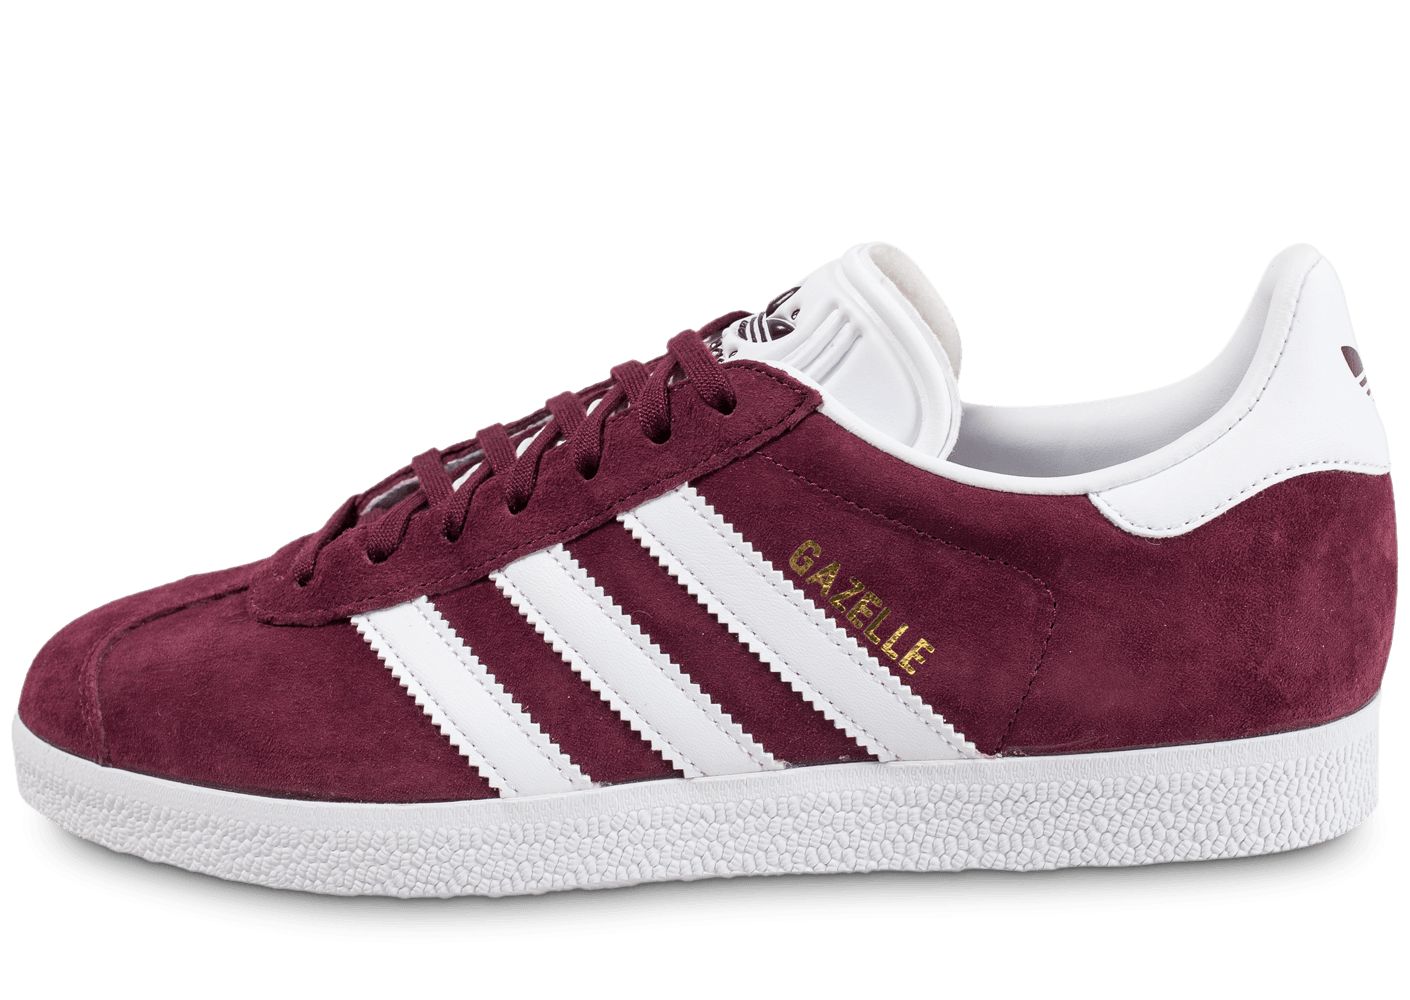 adidas gazelle bordeaux pas cher. Black Bedroom Furniture Sets. Home Design Ideas